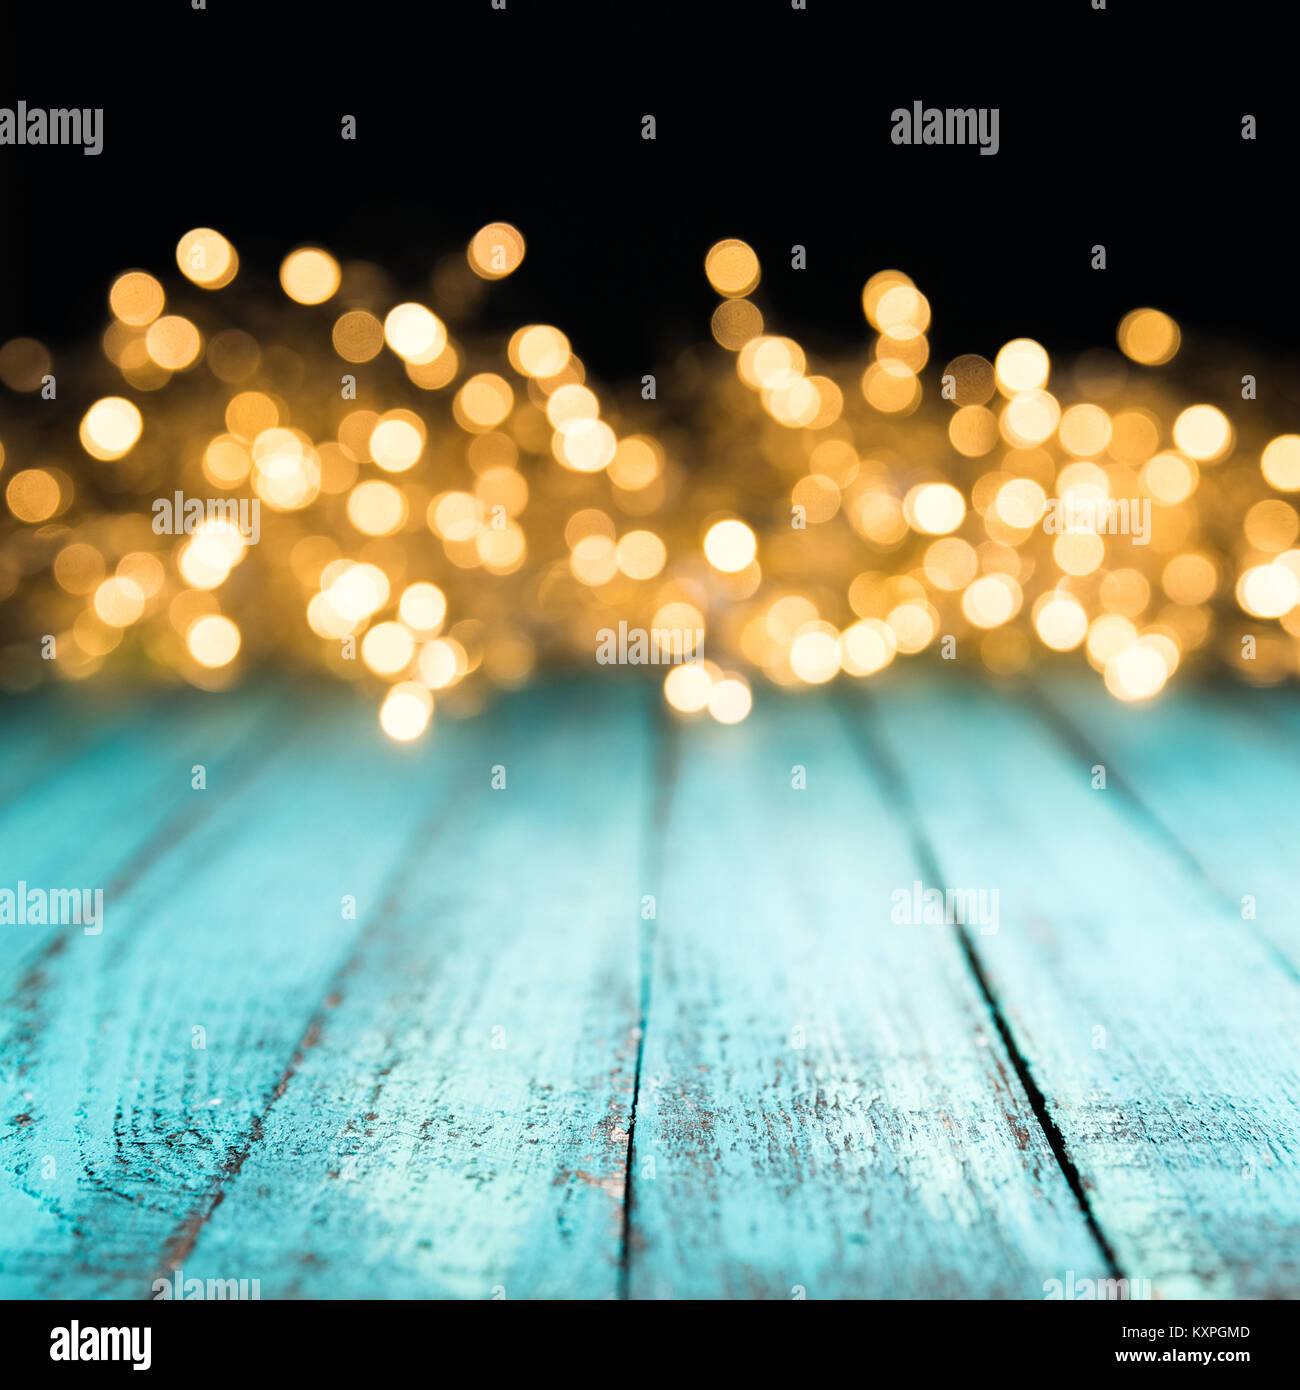 decorative bokeh lights on blue wooden surface, christmas background - Stock Image